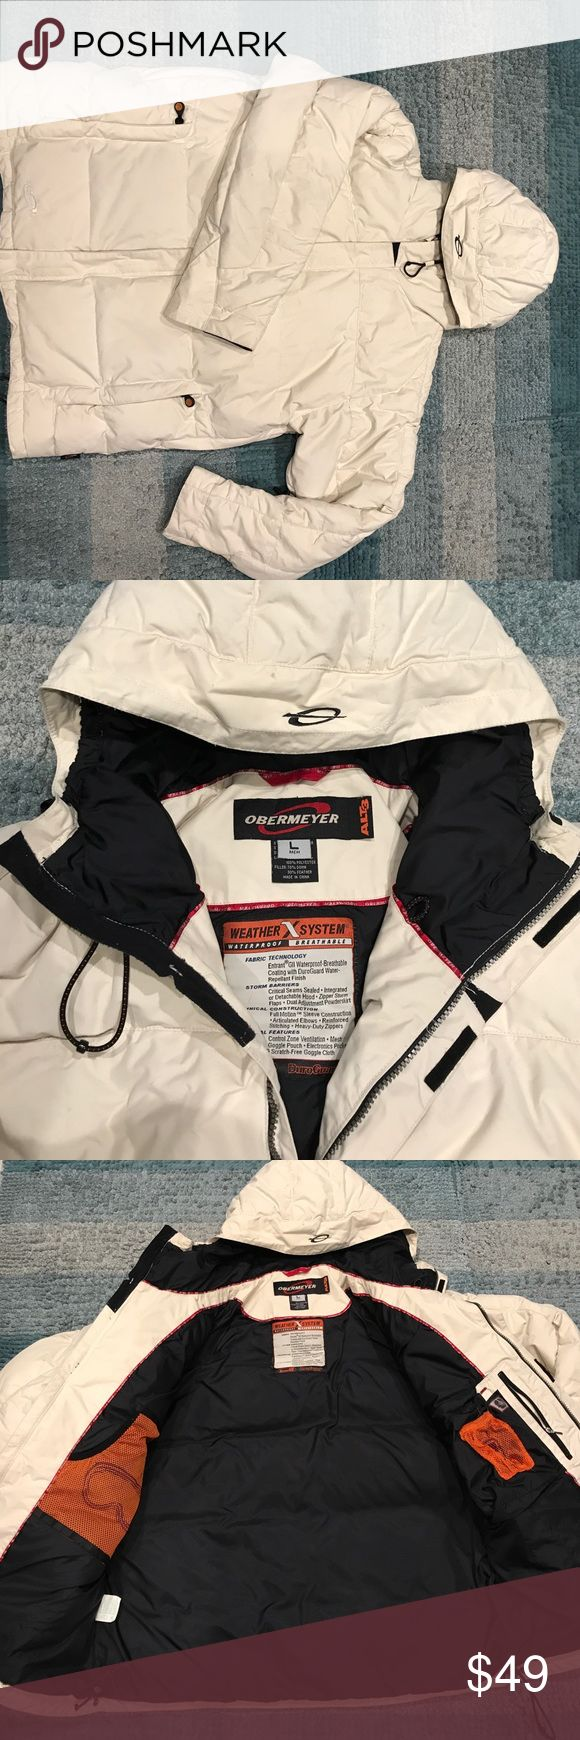 Men's Obermeyer down Ski/Snowboard jacket Down, cream color, large,waterproof, breathable hooded jacket. Has pit zips and several pockets inside and hand pockets on the exterior. Adjustable waist for tightening and Velcro wrist straps/adjusting feature. Obermeyer Jackets & Coats Puffers